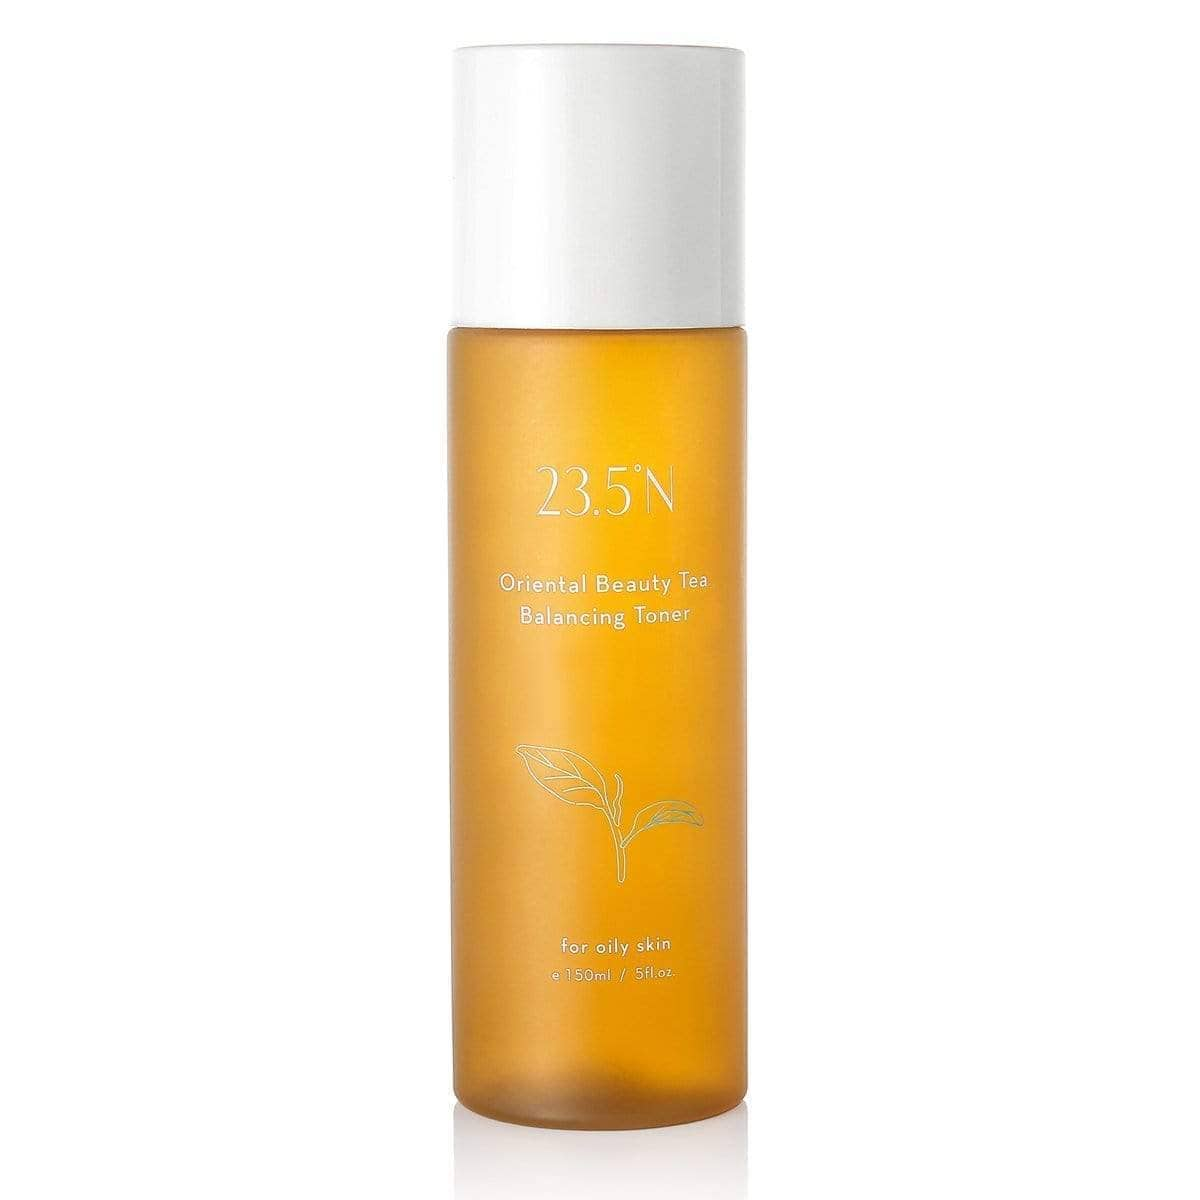 23.5N Oriental Beauty Tea Balancing Toner